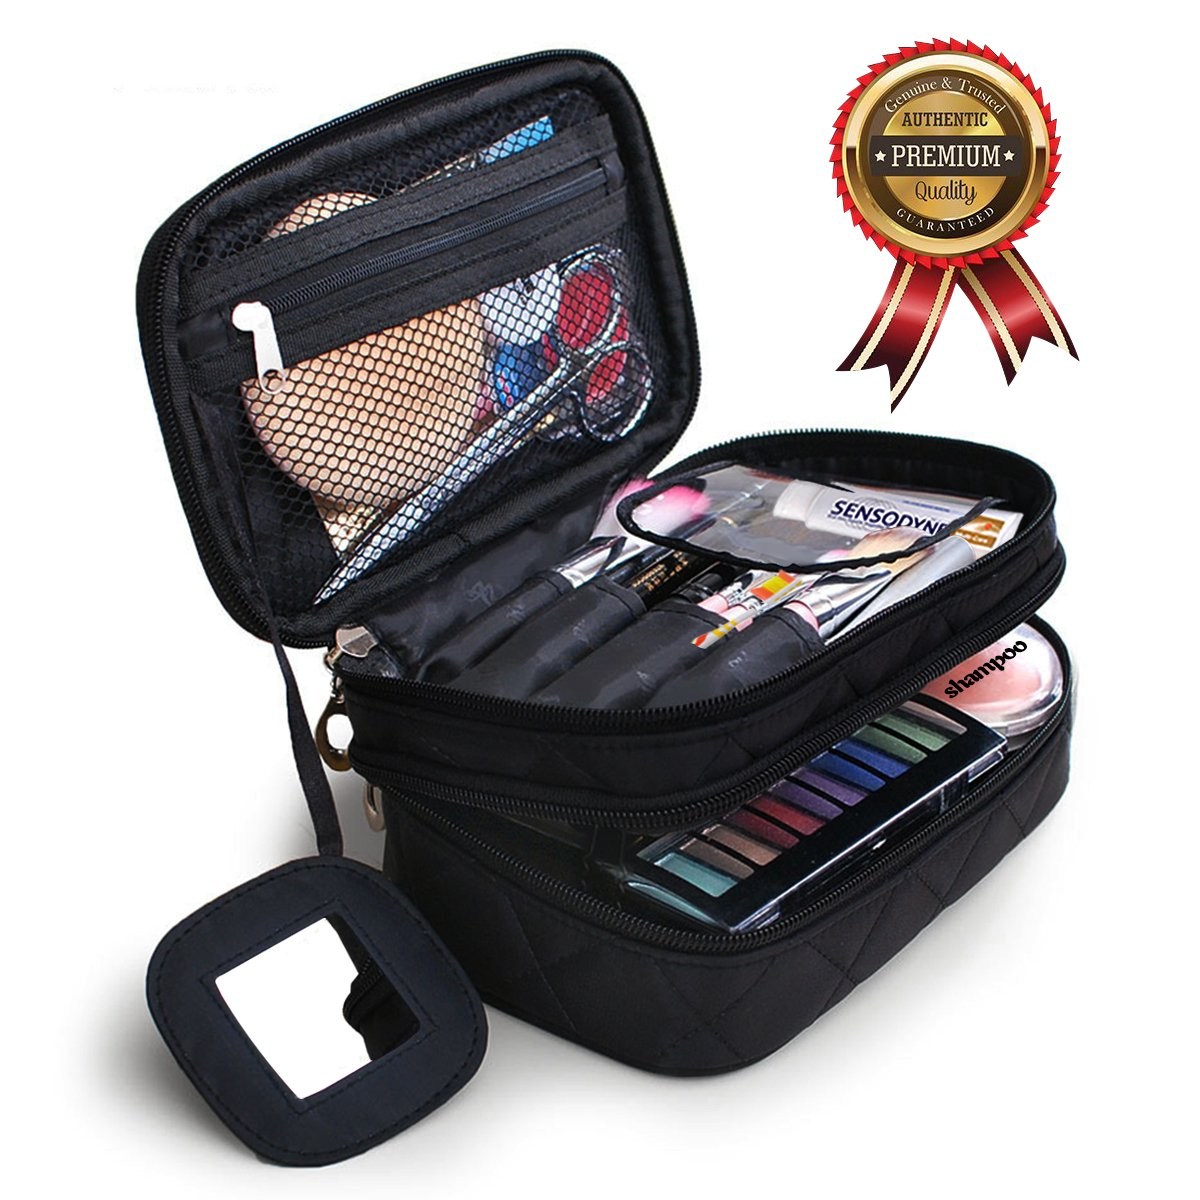 Portable Makeup Bag Double Layer Toiletry Cosmetic Brush Organizer with Mirror for Women Black Multifunctional Travel Bussiness Home (Small, Black)